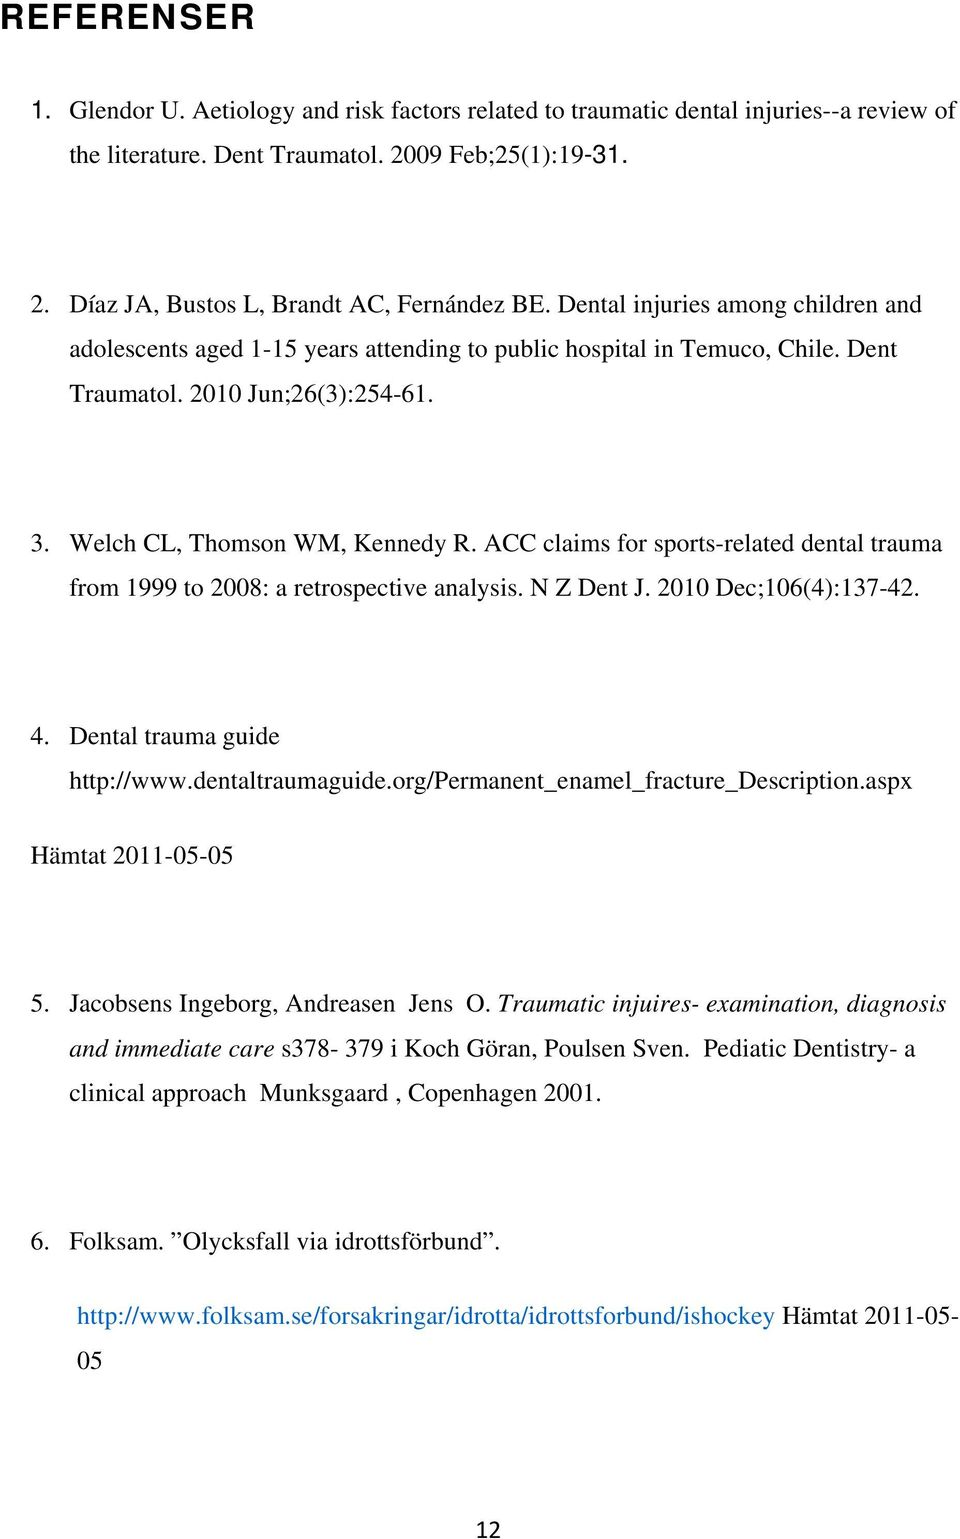 ACC claims for sports-related dental trauma from 1999 to 2008: a retrospective analysis. N Z Dent J. 2010 Dec;106(4):137-42. 4. Dental trauma guide http://www.dentaltraumaguide.